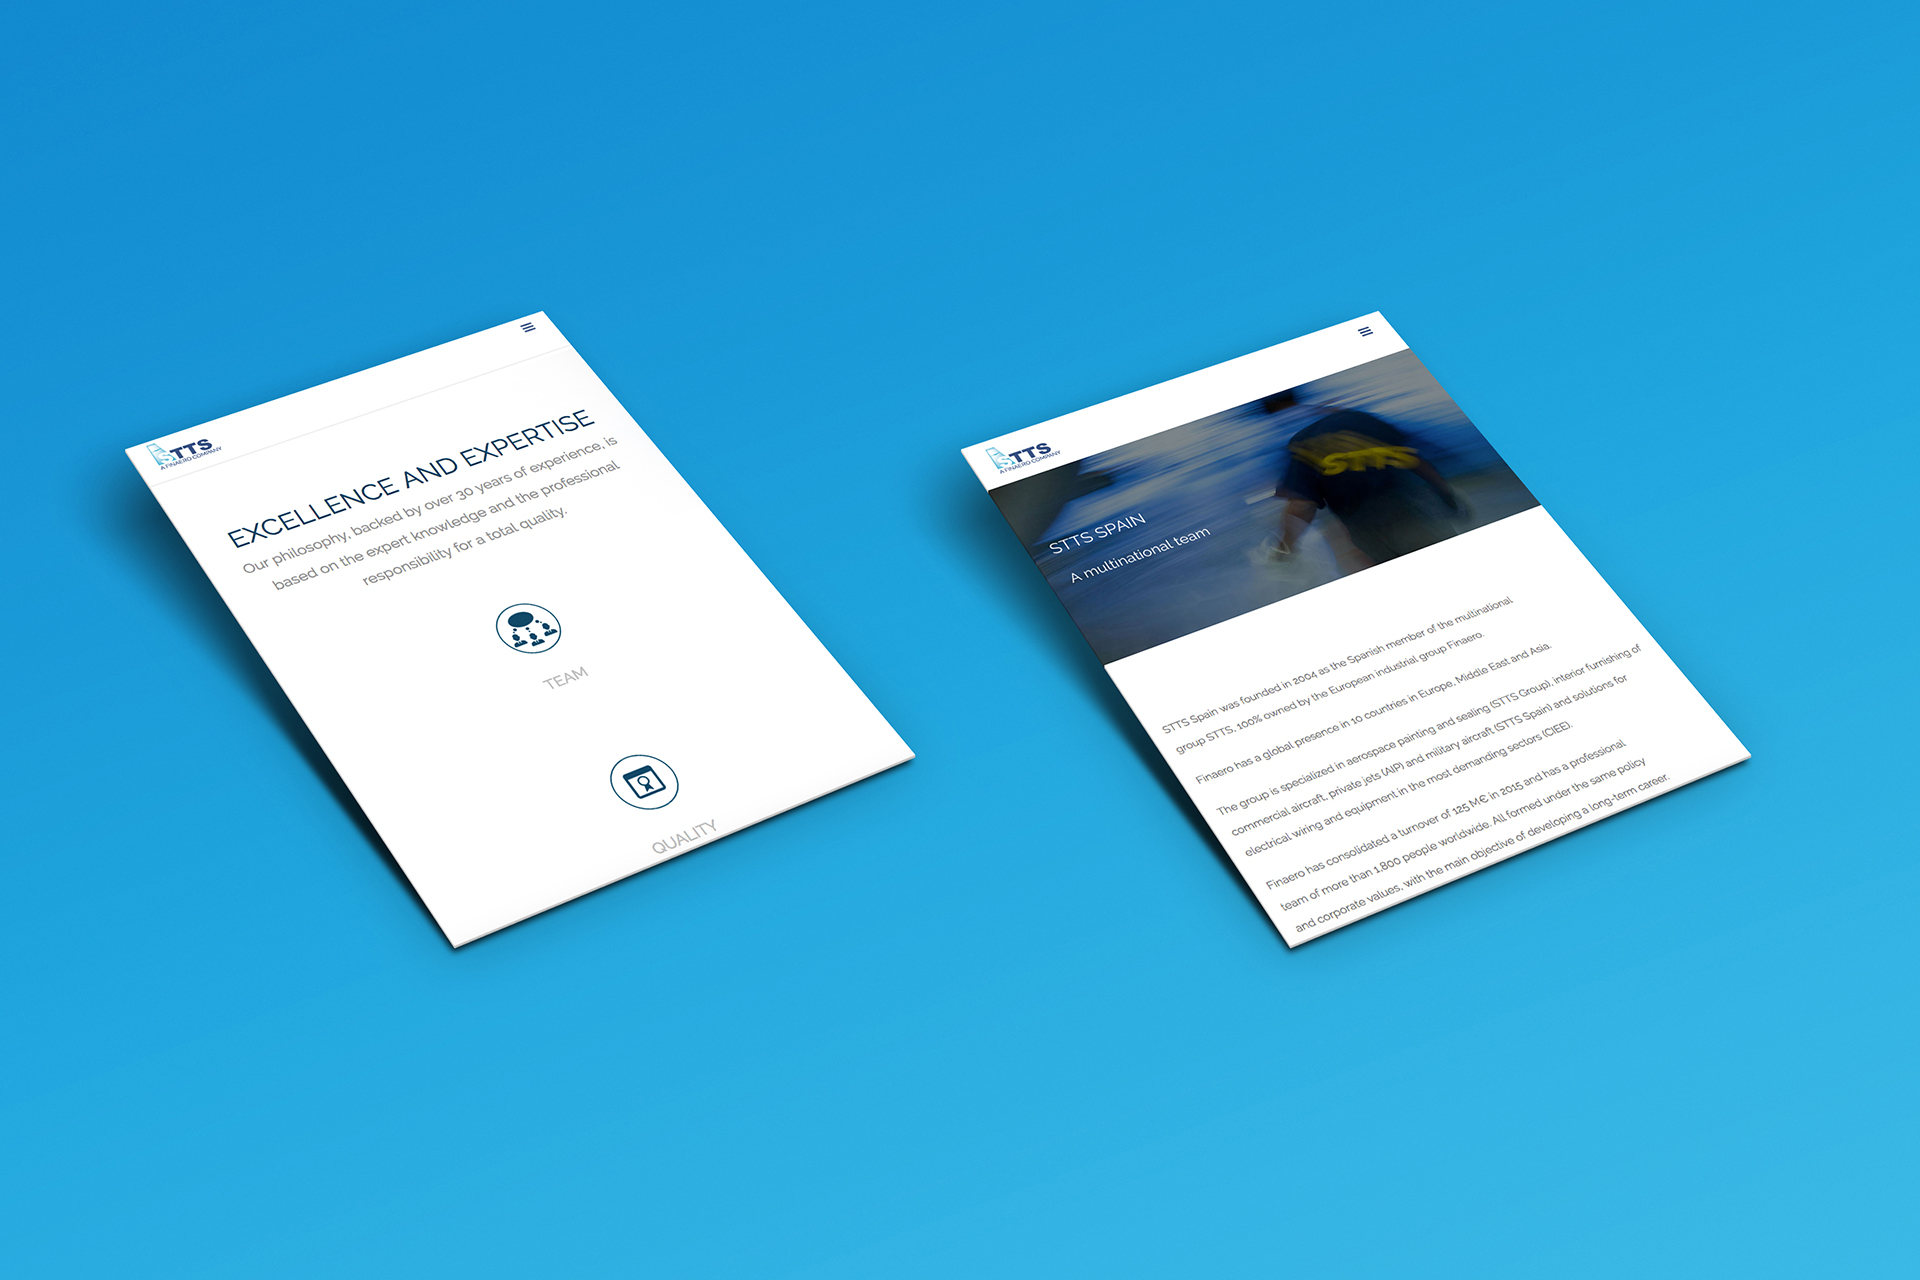 STTS_DOX_2 Communication and branding service for STTS Spain